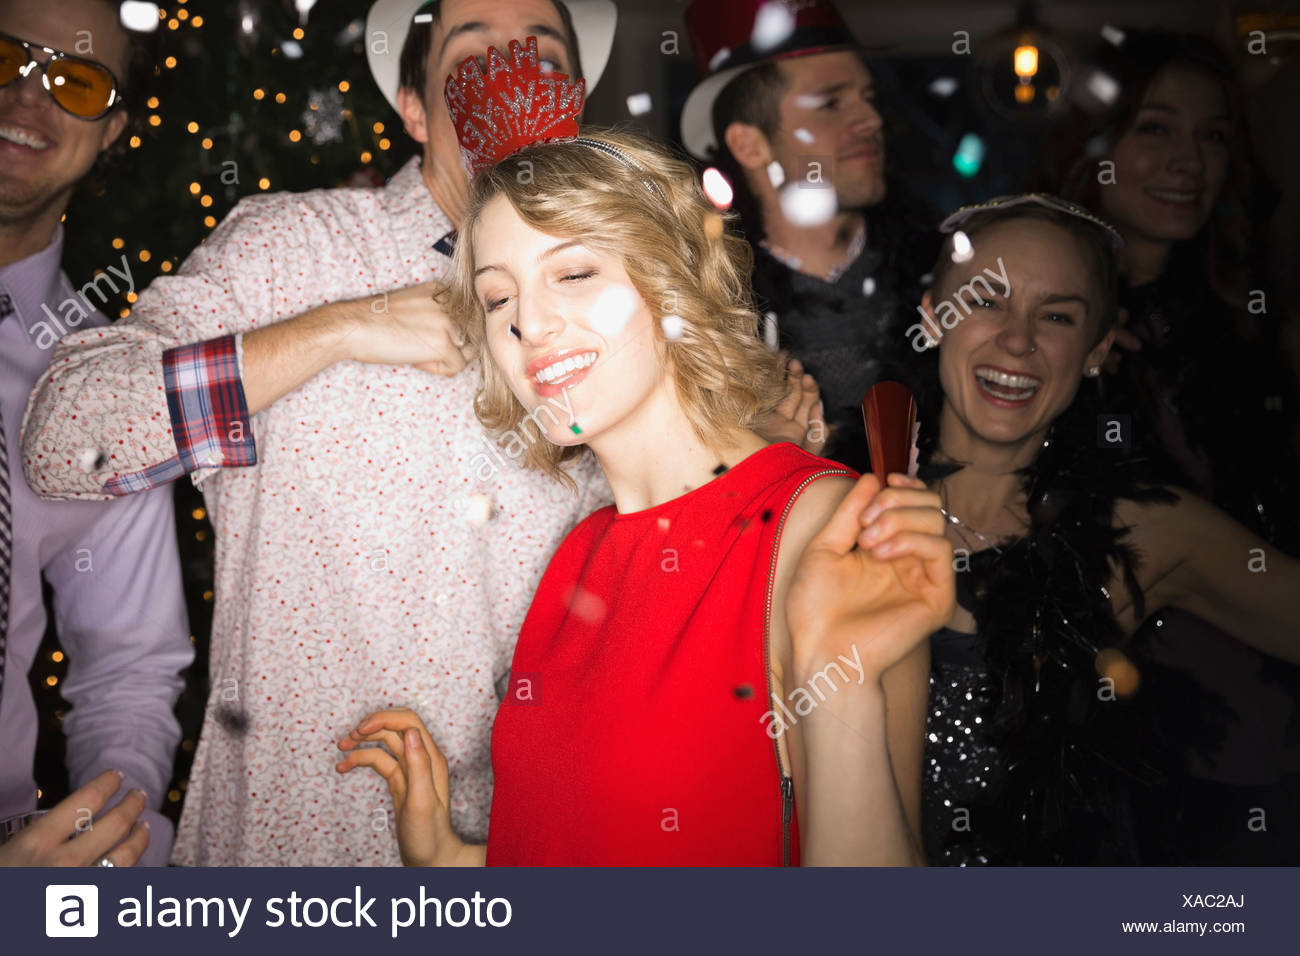 Friends celebrating New Years Eve party - Stock Image